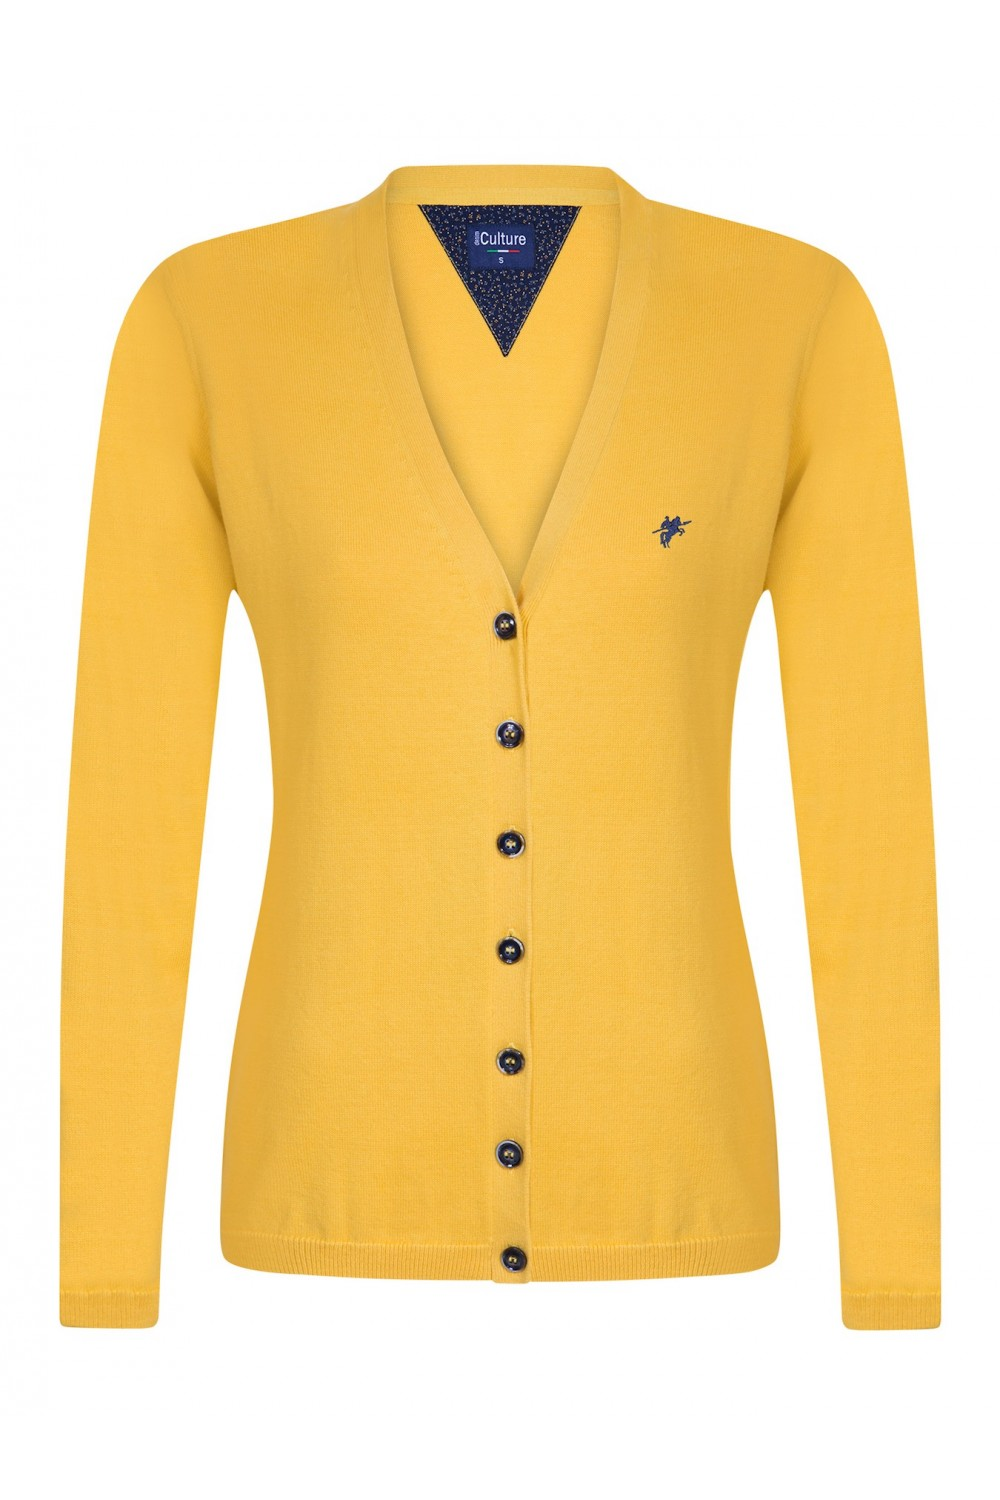 Women's Cardigan Button V-neck Yellow